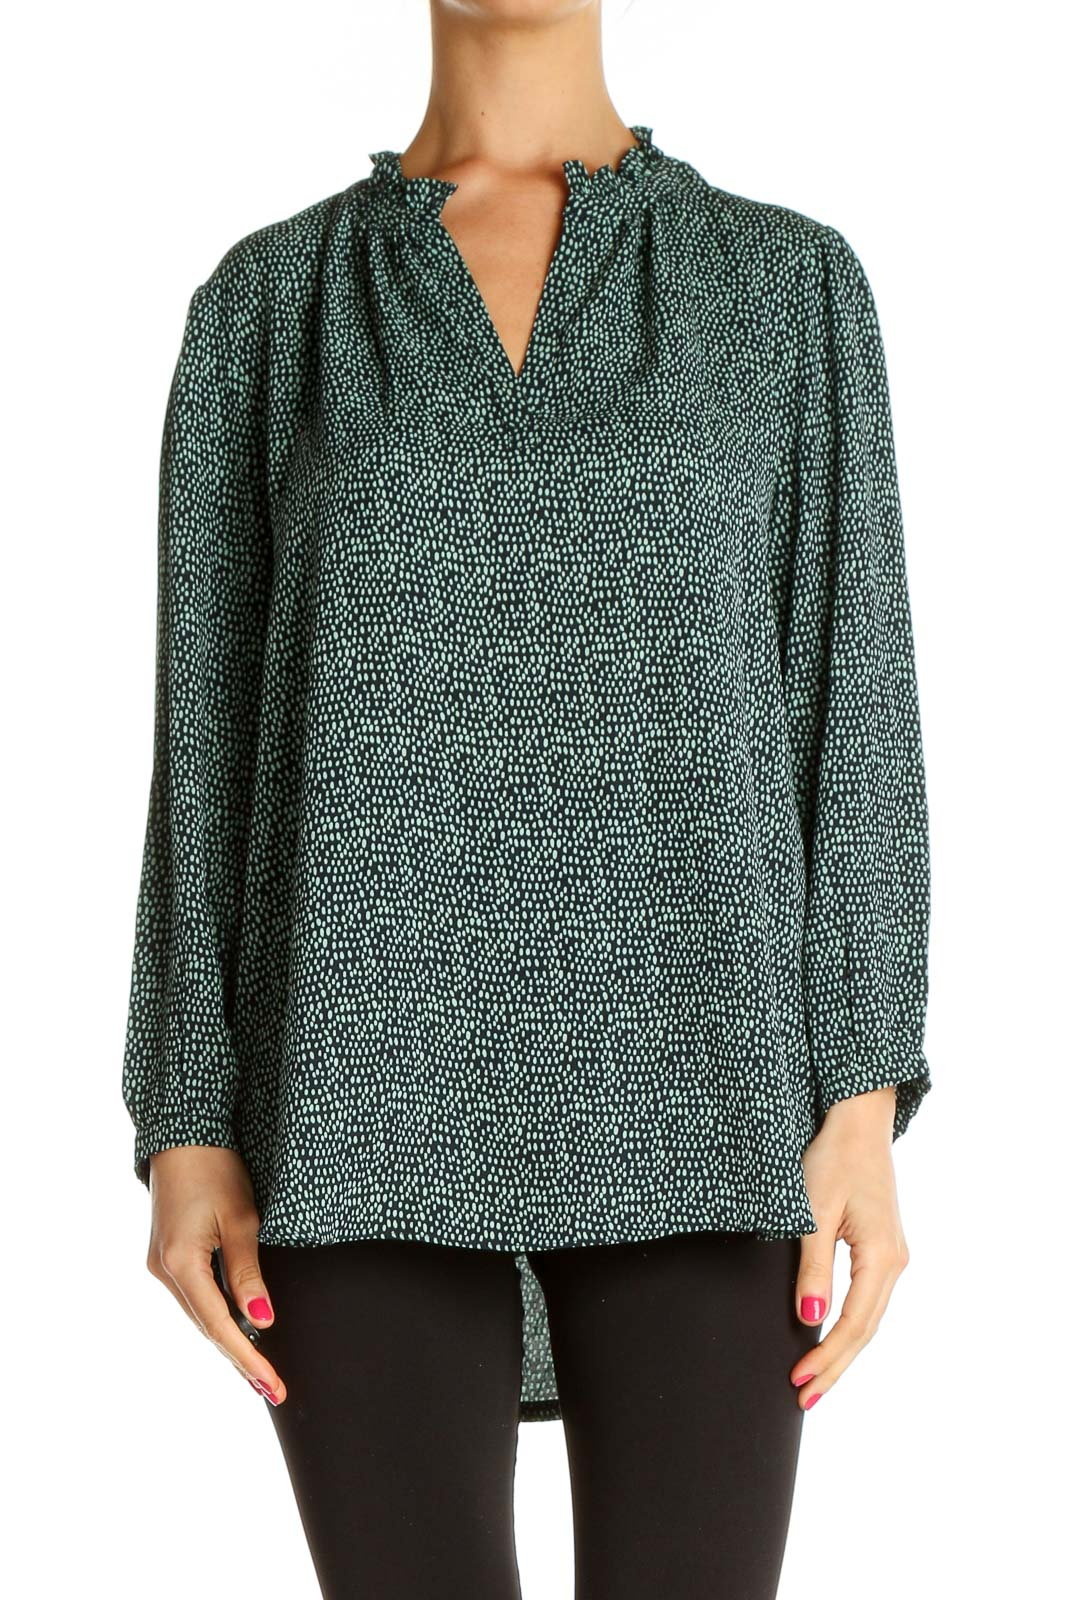 Green Textured All Day Wear Sweater Front